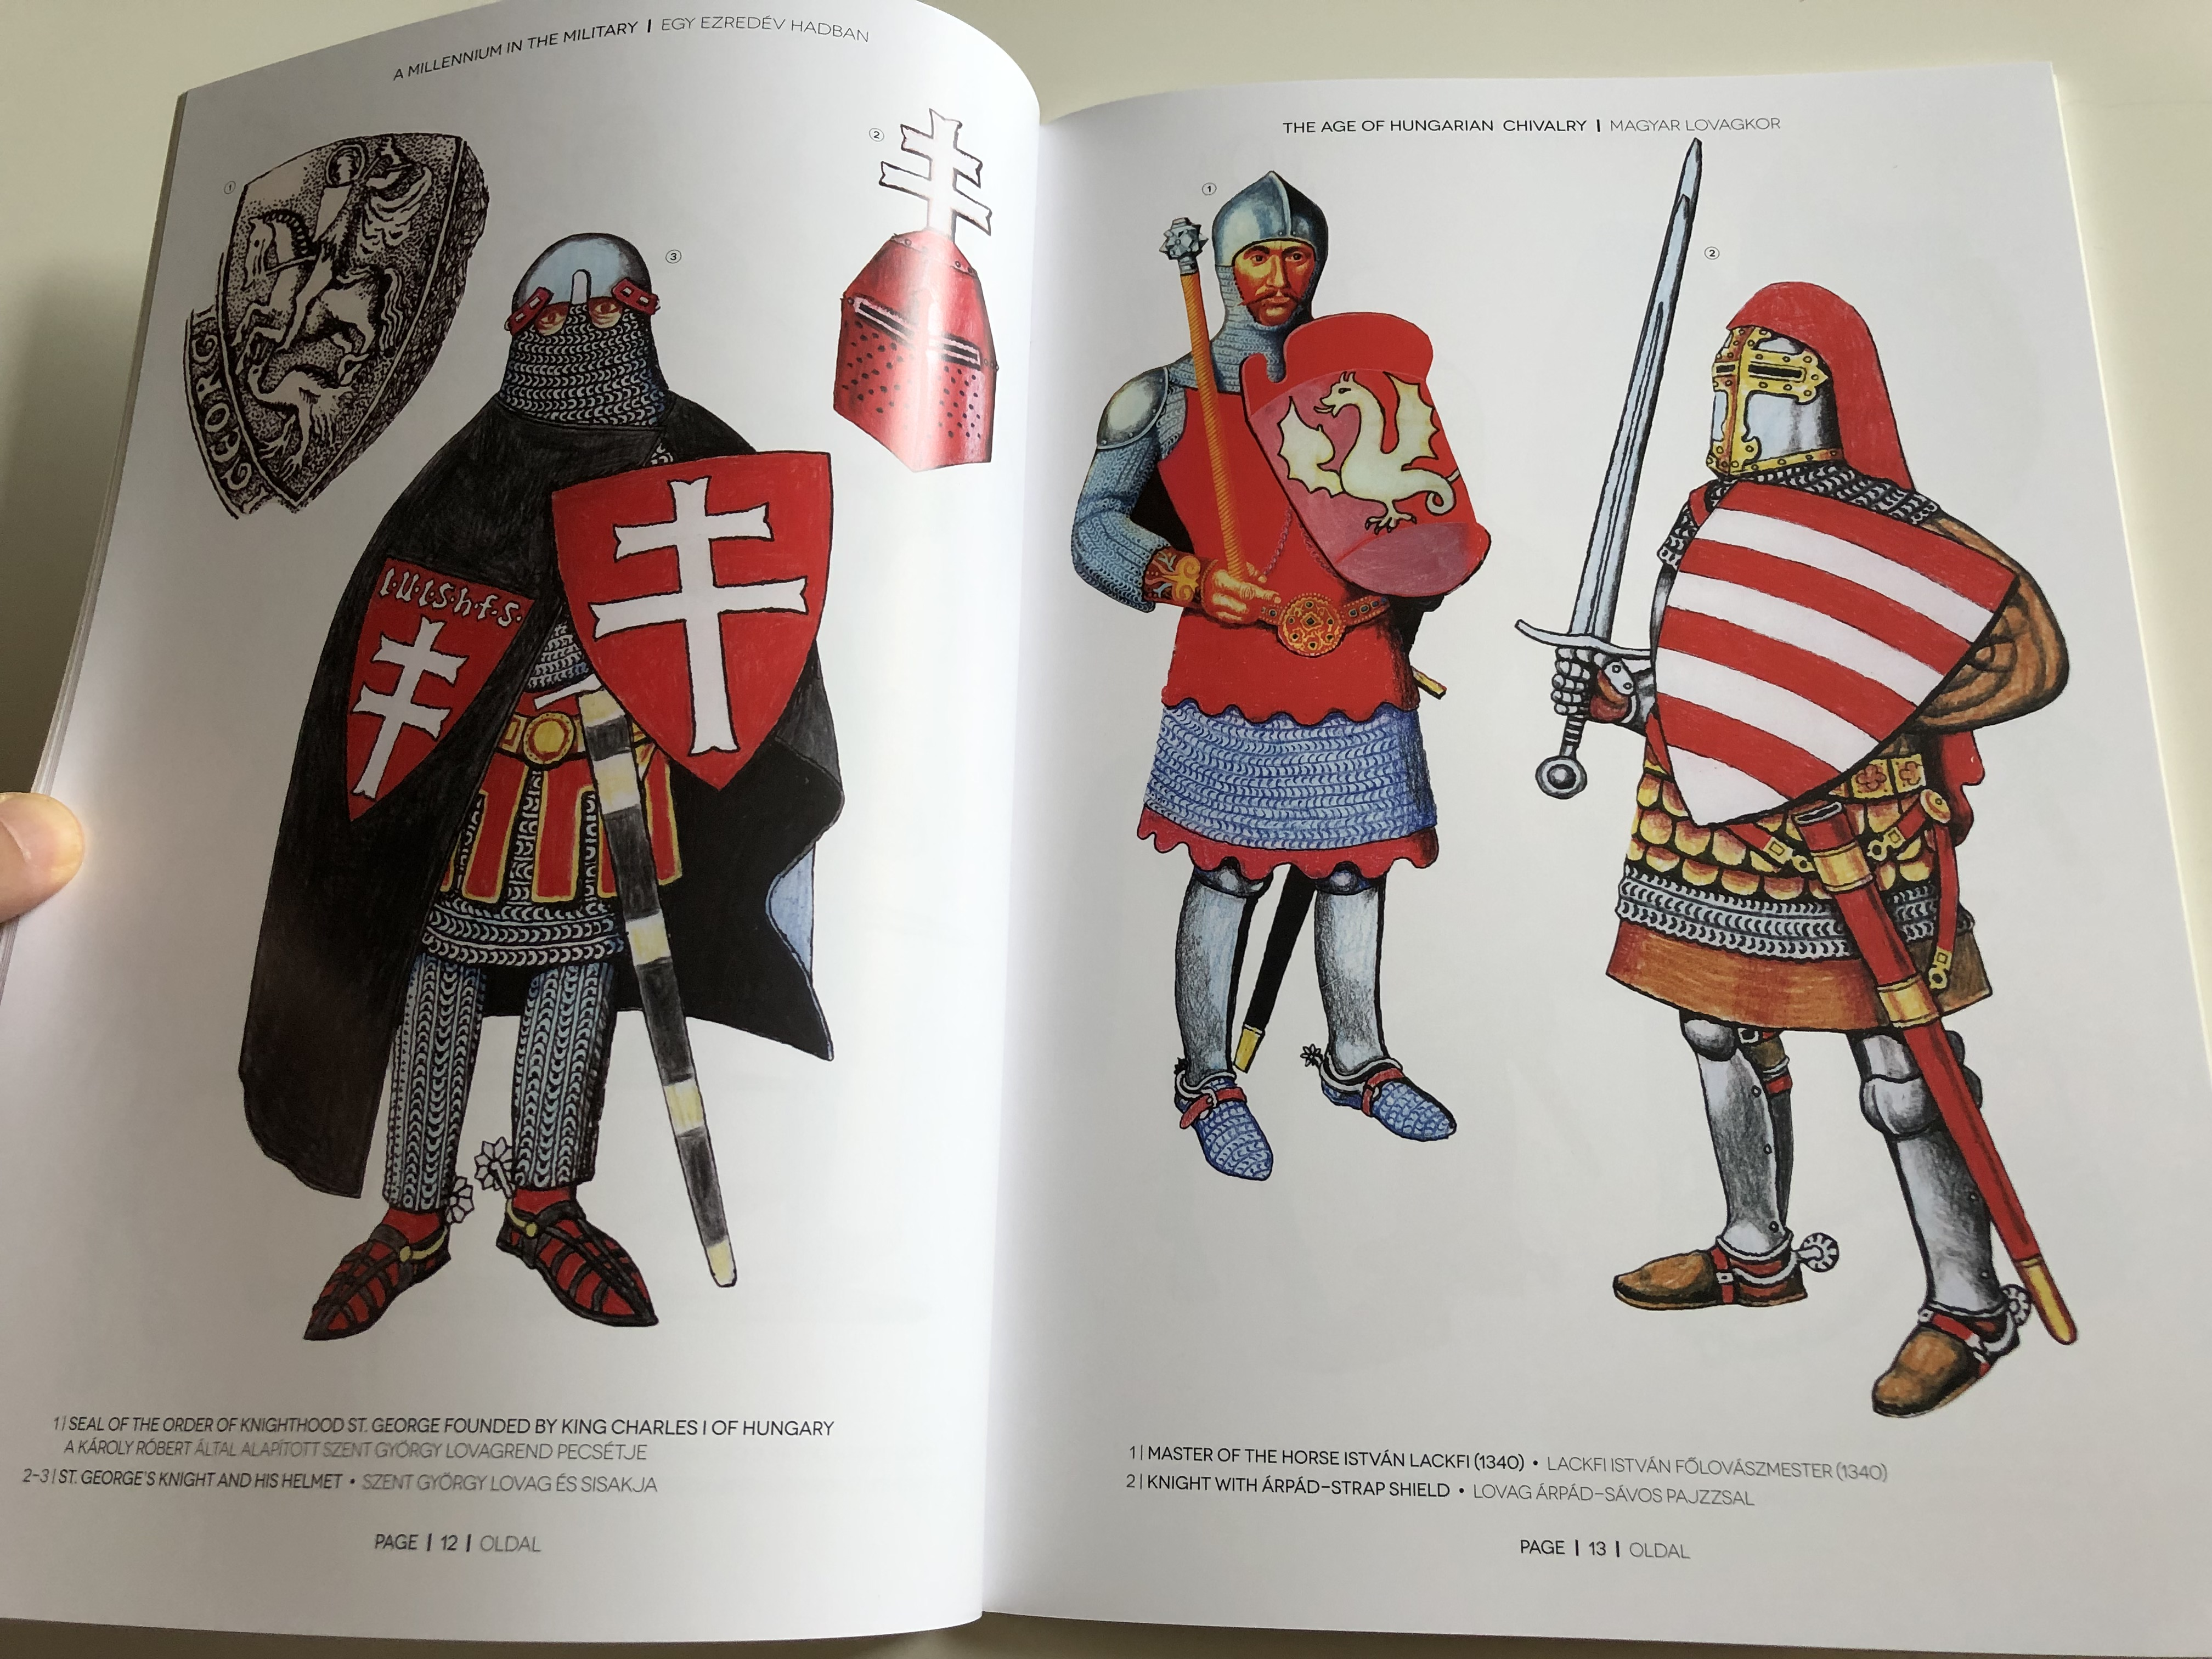 hungarian-age-of-chivalry-1901-1456-by-gy-z-somogyi-magyar-lovagkor-1301-1456-a-millennium-in-the-military-egy-ezred-v-hadban-paperback-2018-hm-zr-nyi-4-.jpg